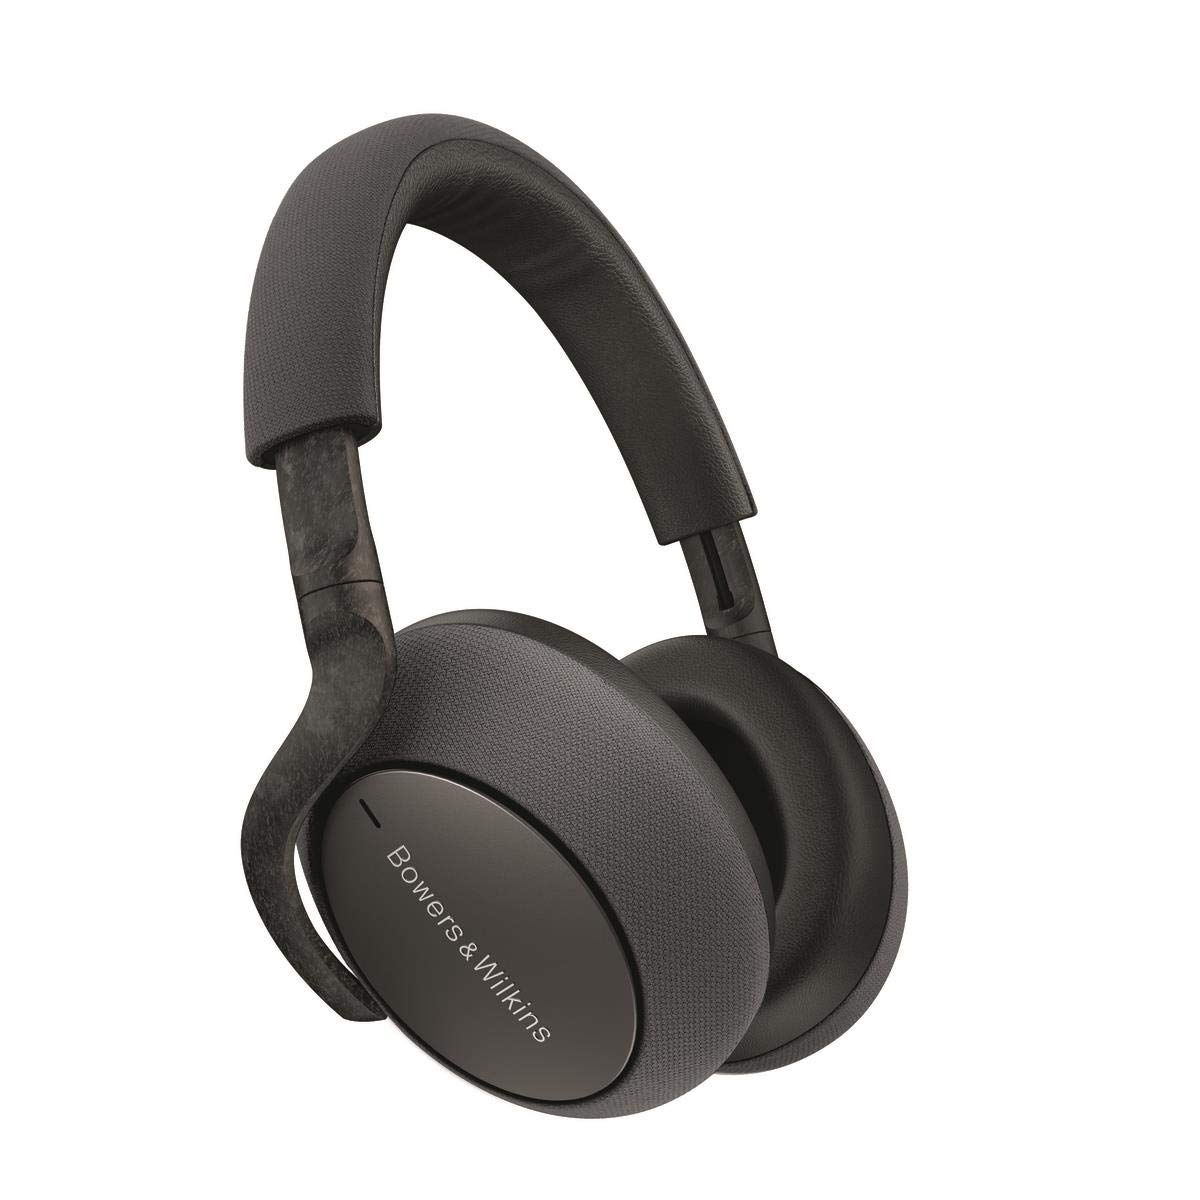 Bowers & Wilkins PX7 Over Ear Wireless Bluetooth Headphone, Adaptive Noise Cancelling - Space Grey by Bowers & Wilkins